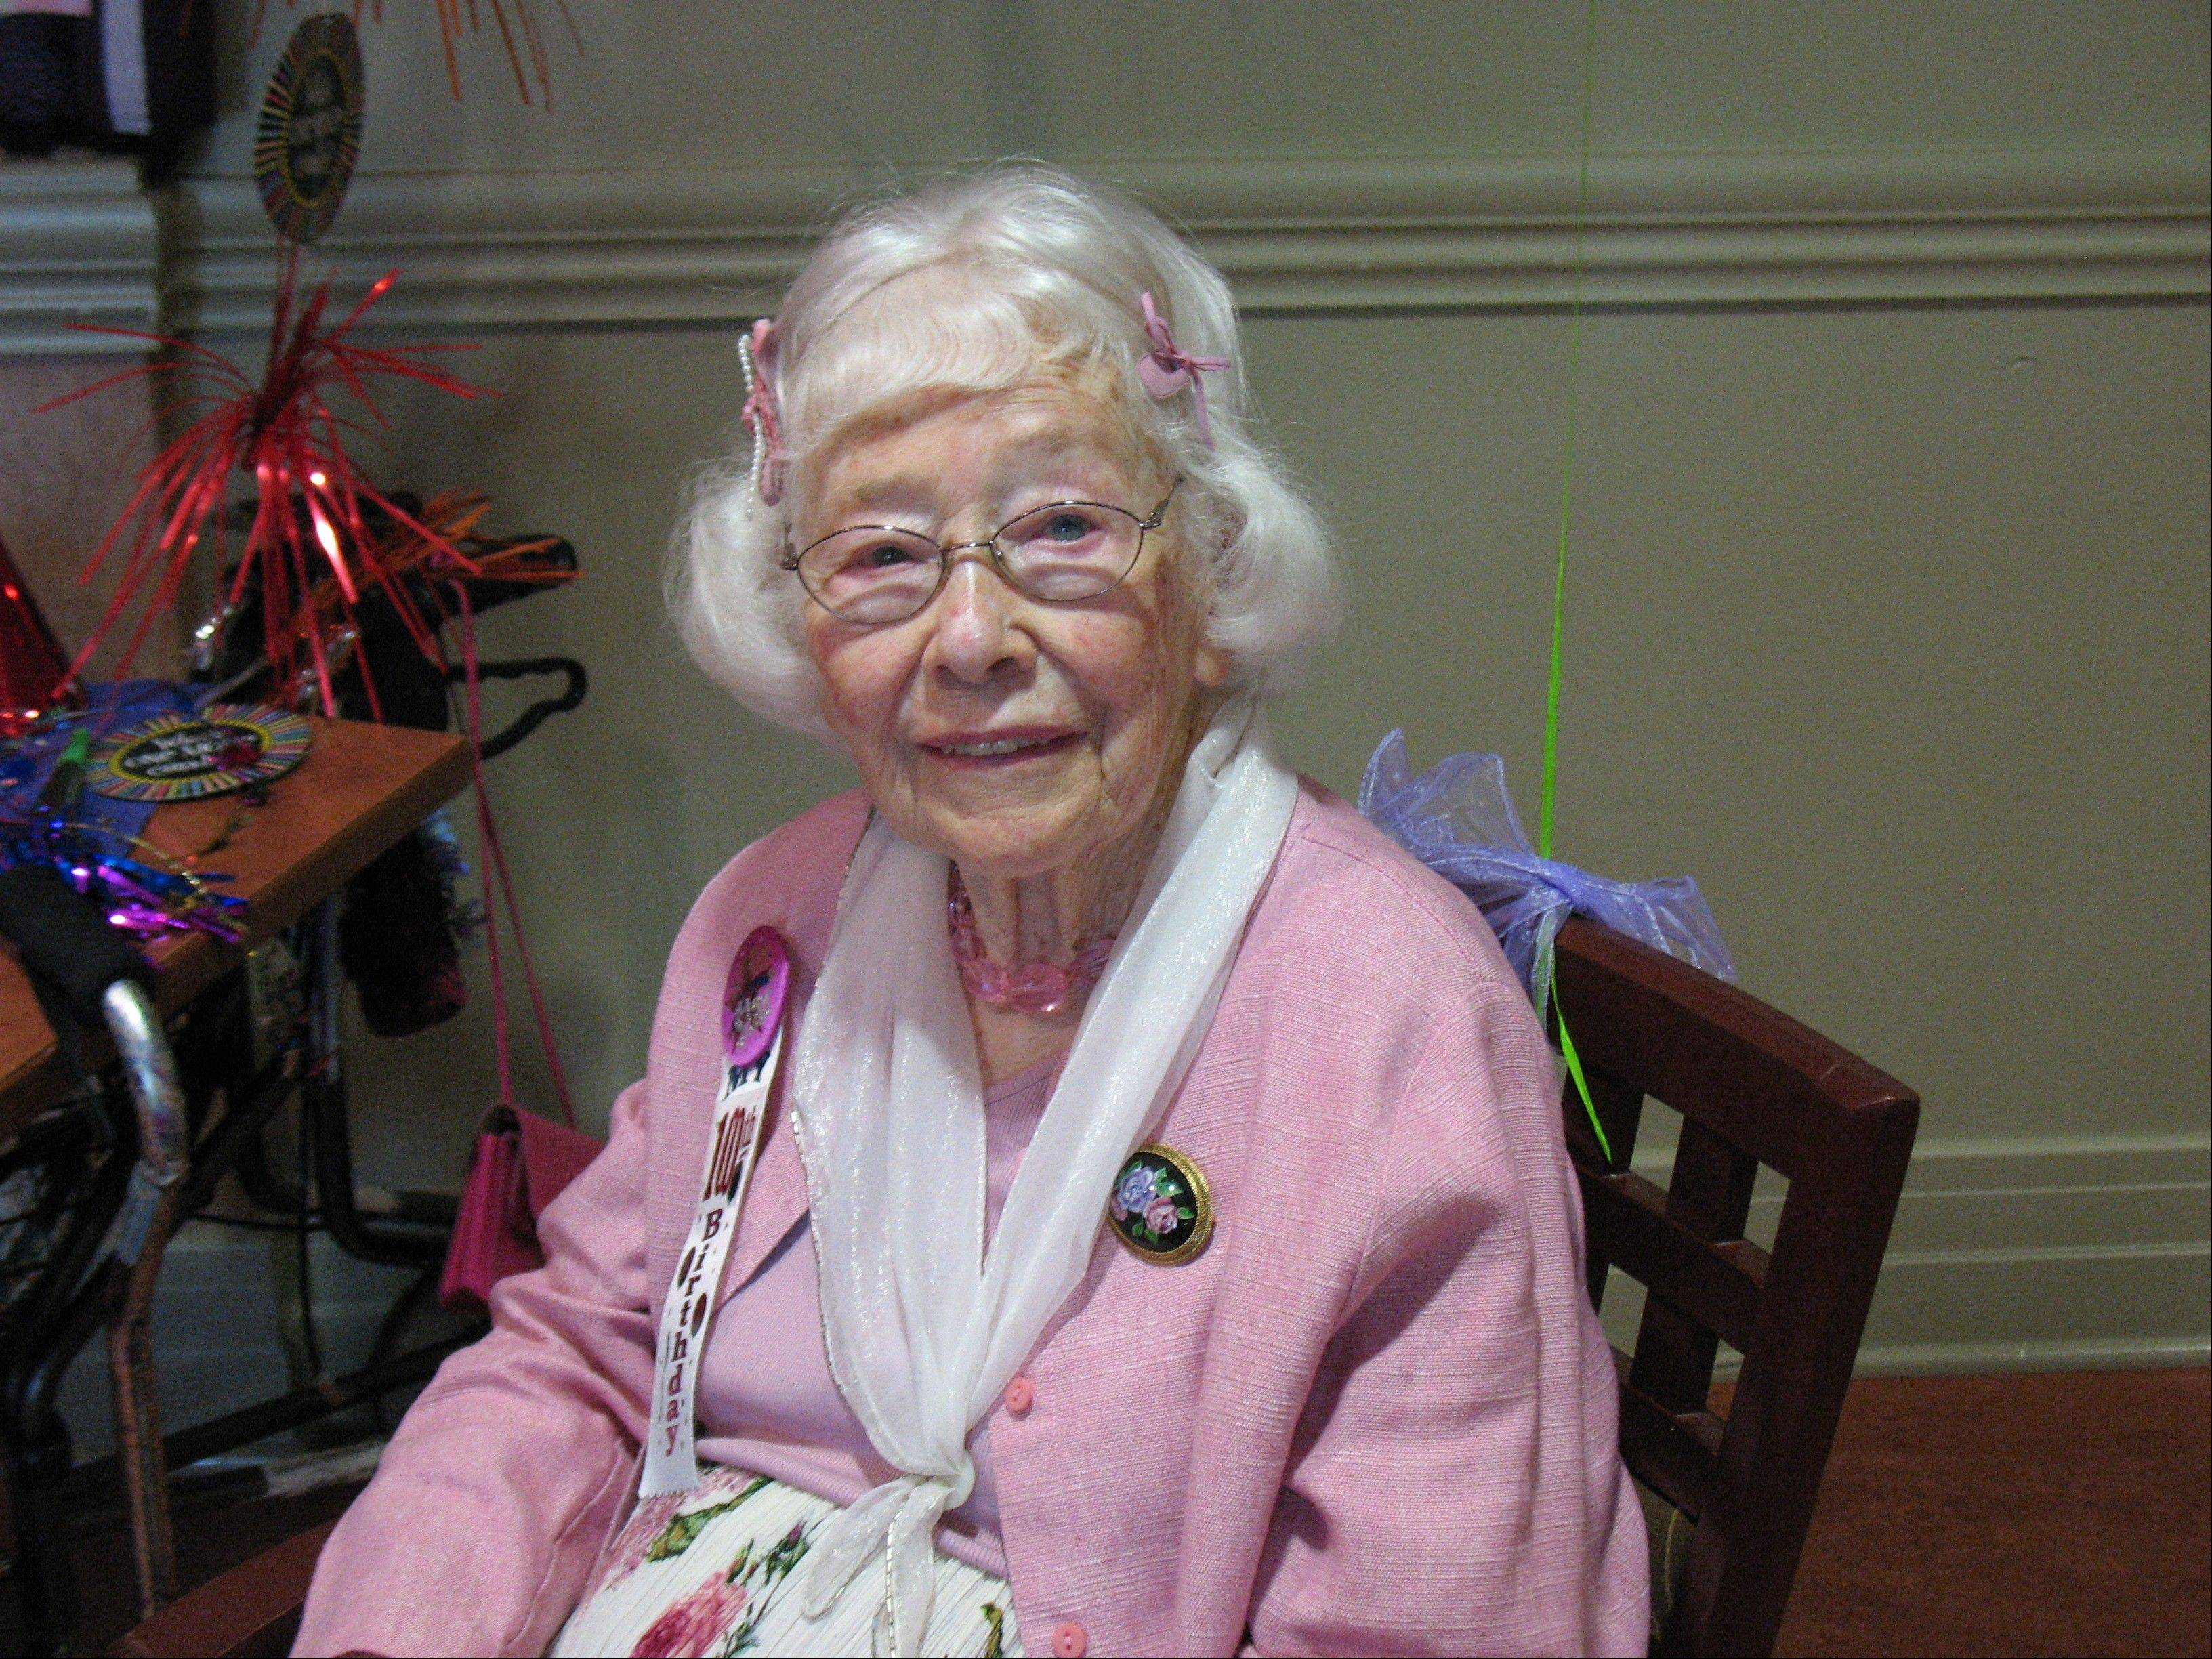 Isabelle Sandquist celebrated her 100th birthday Wednesday at the Holmstad senior living center in Batavia.